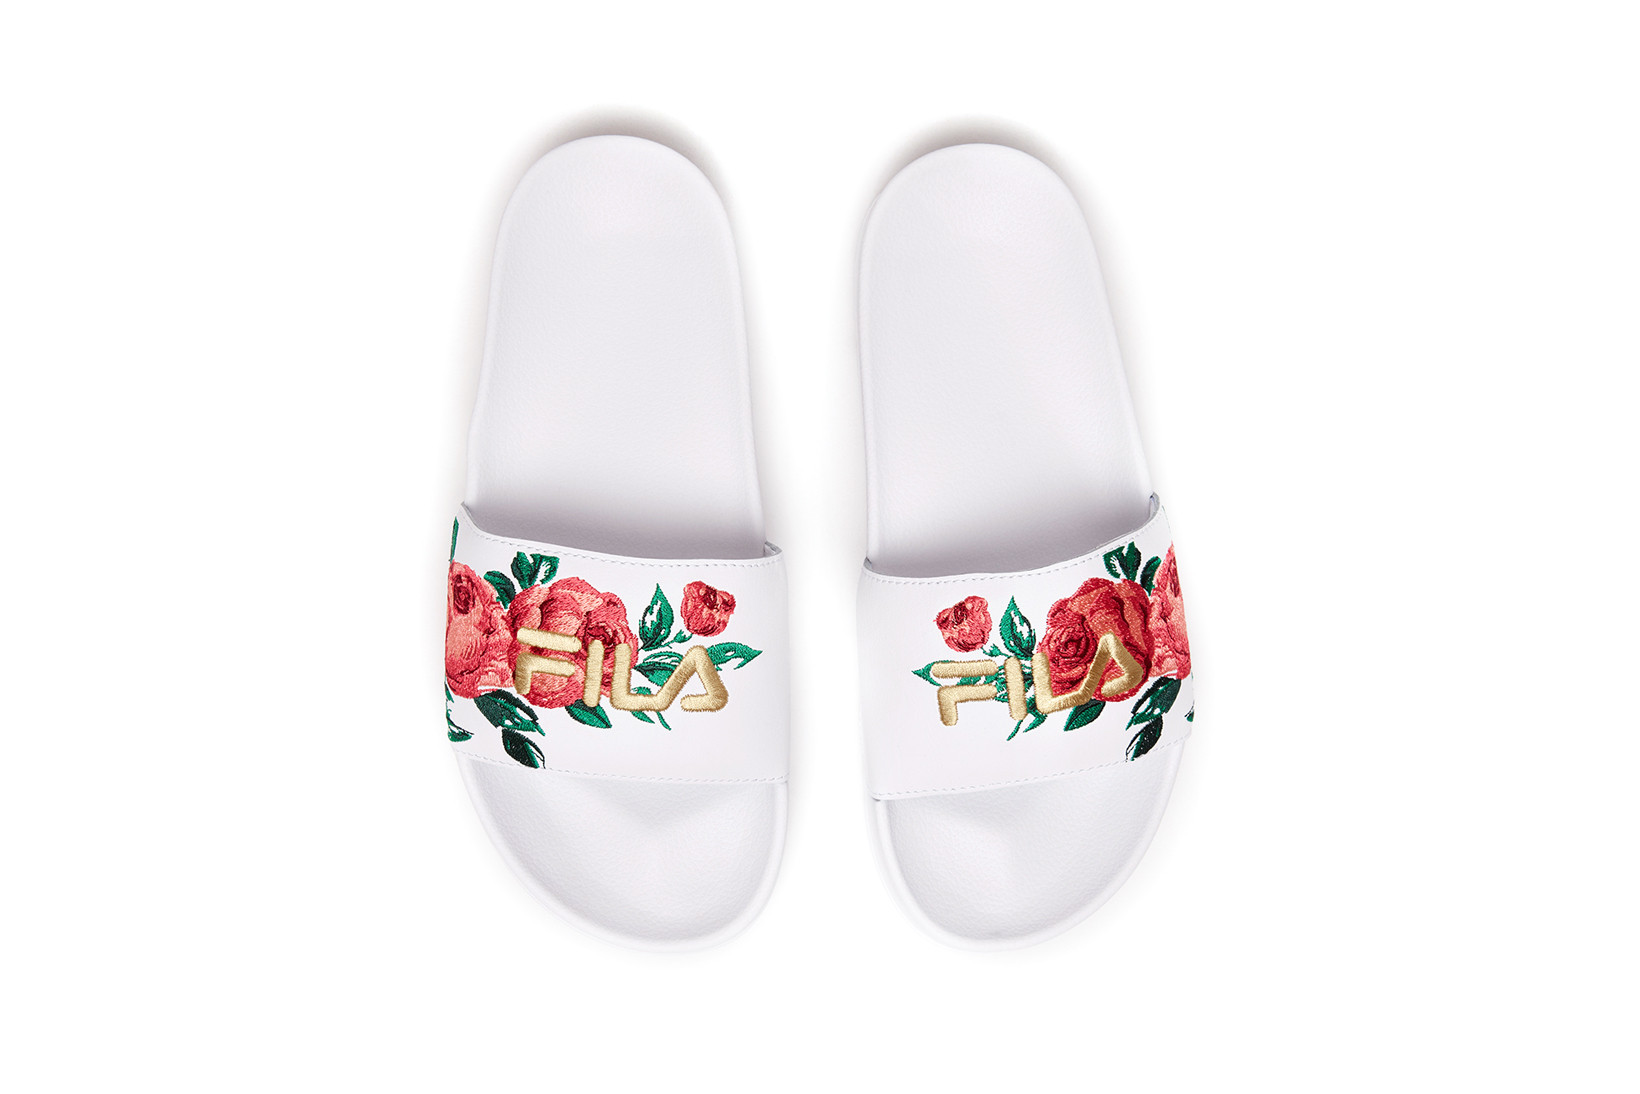 Floral Embroidery Pack